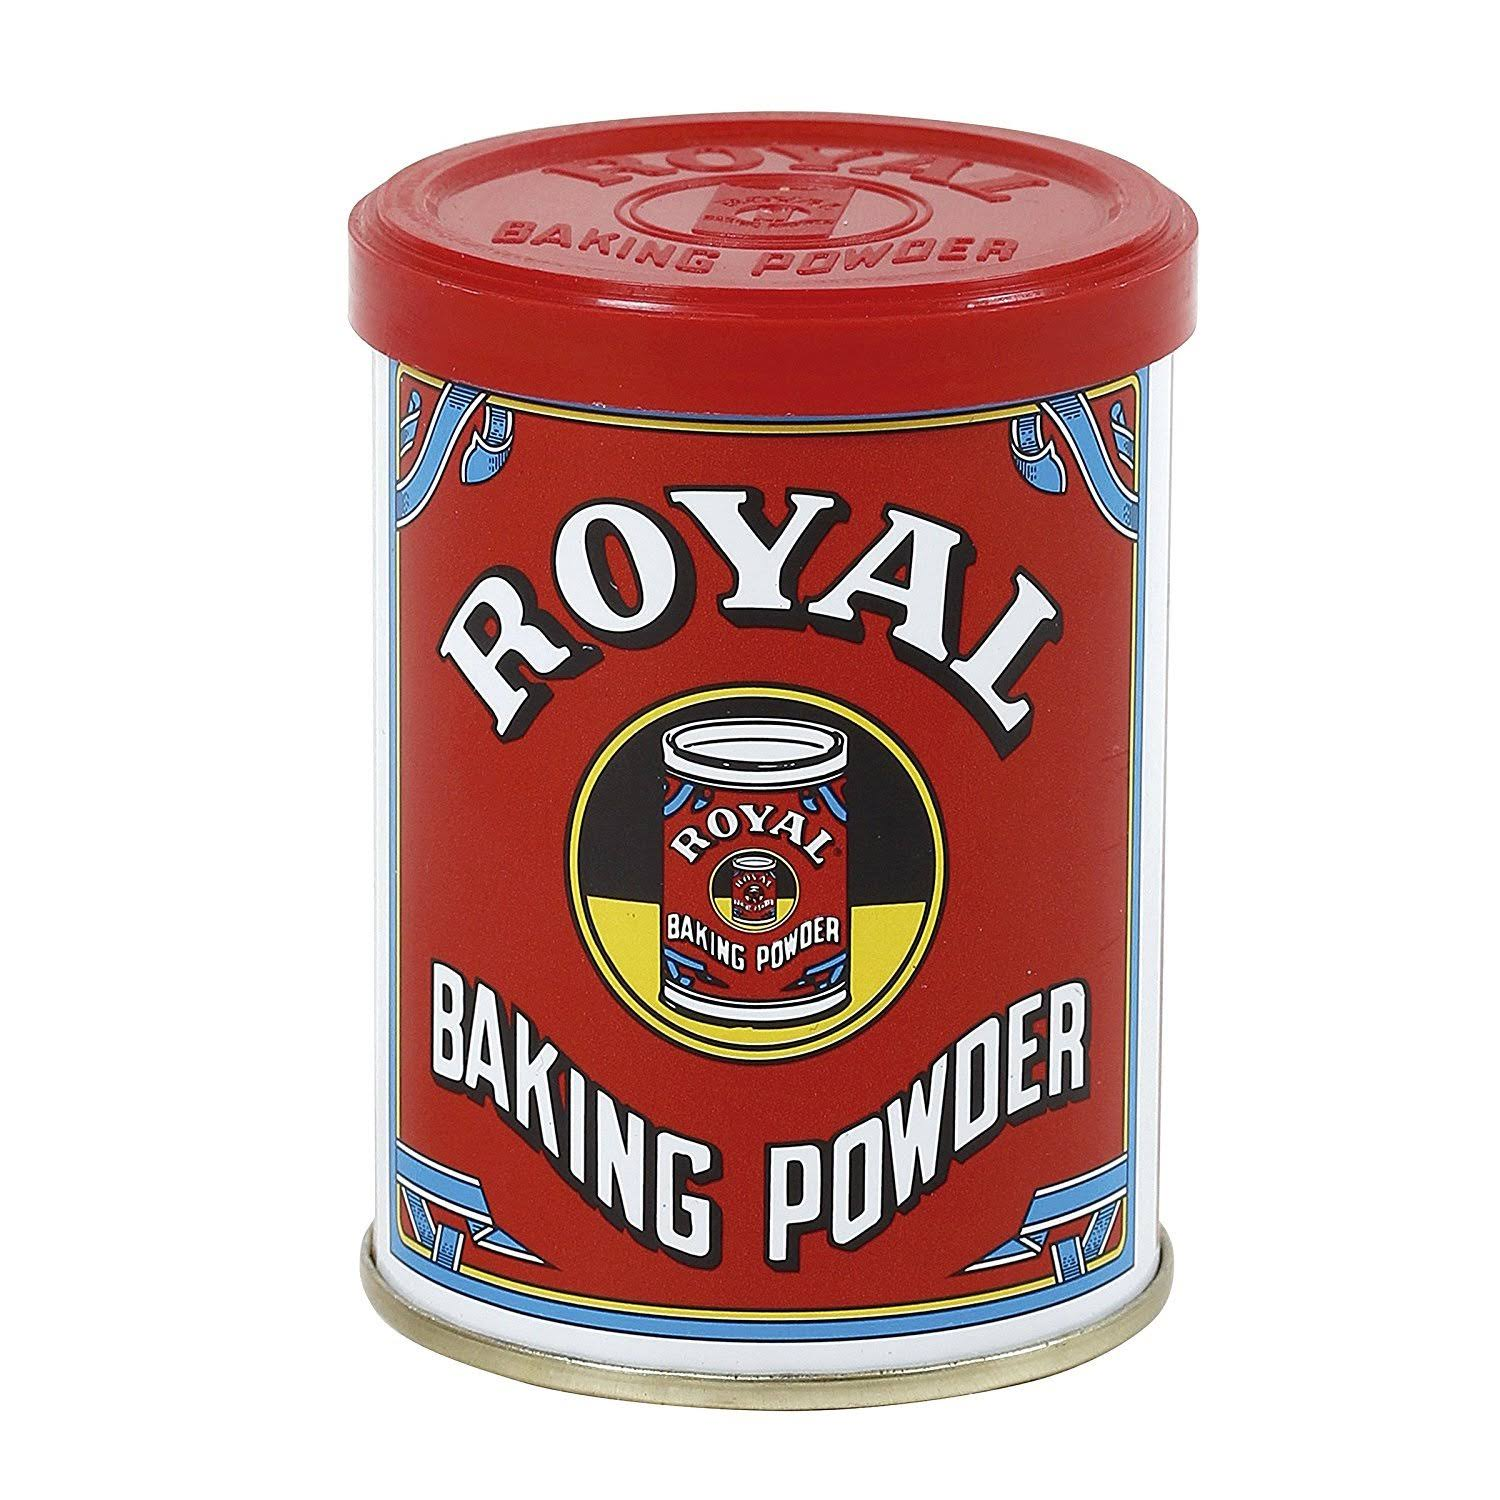 Baking Powder Royal 113g